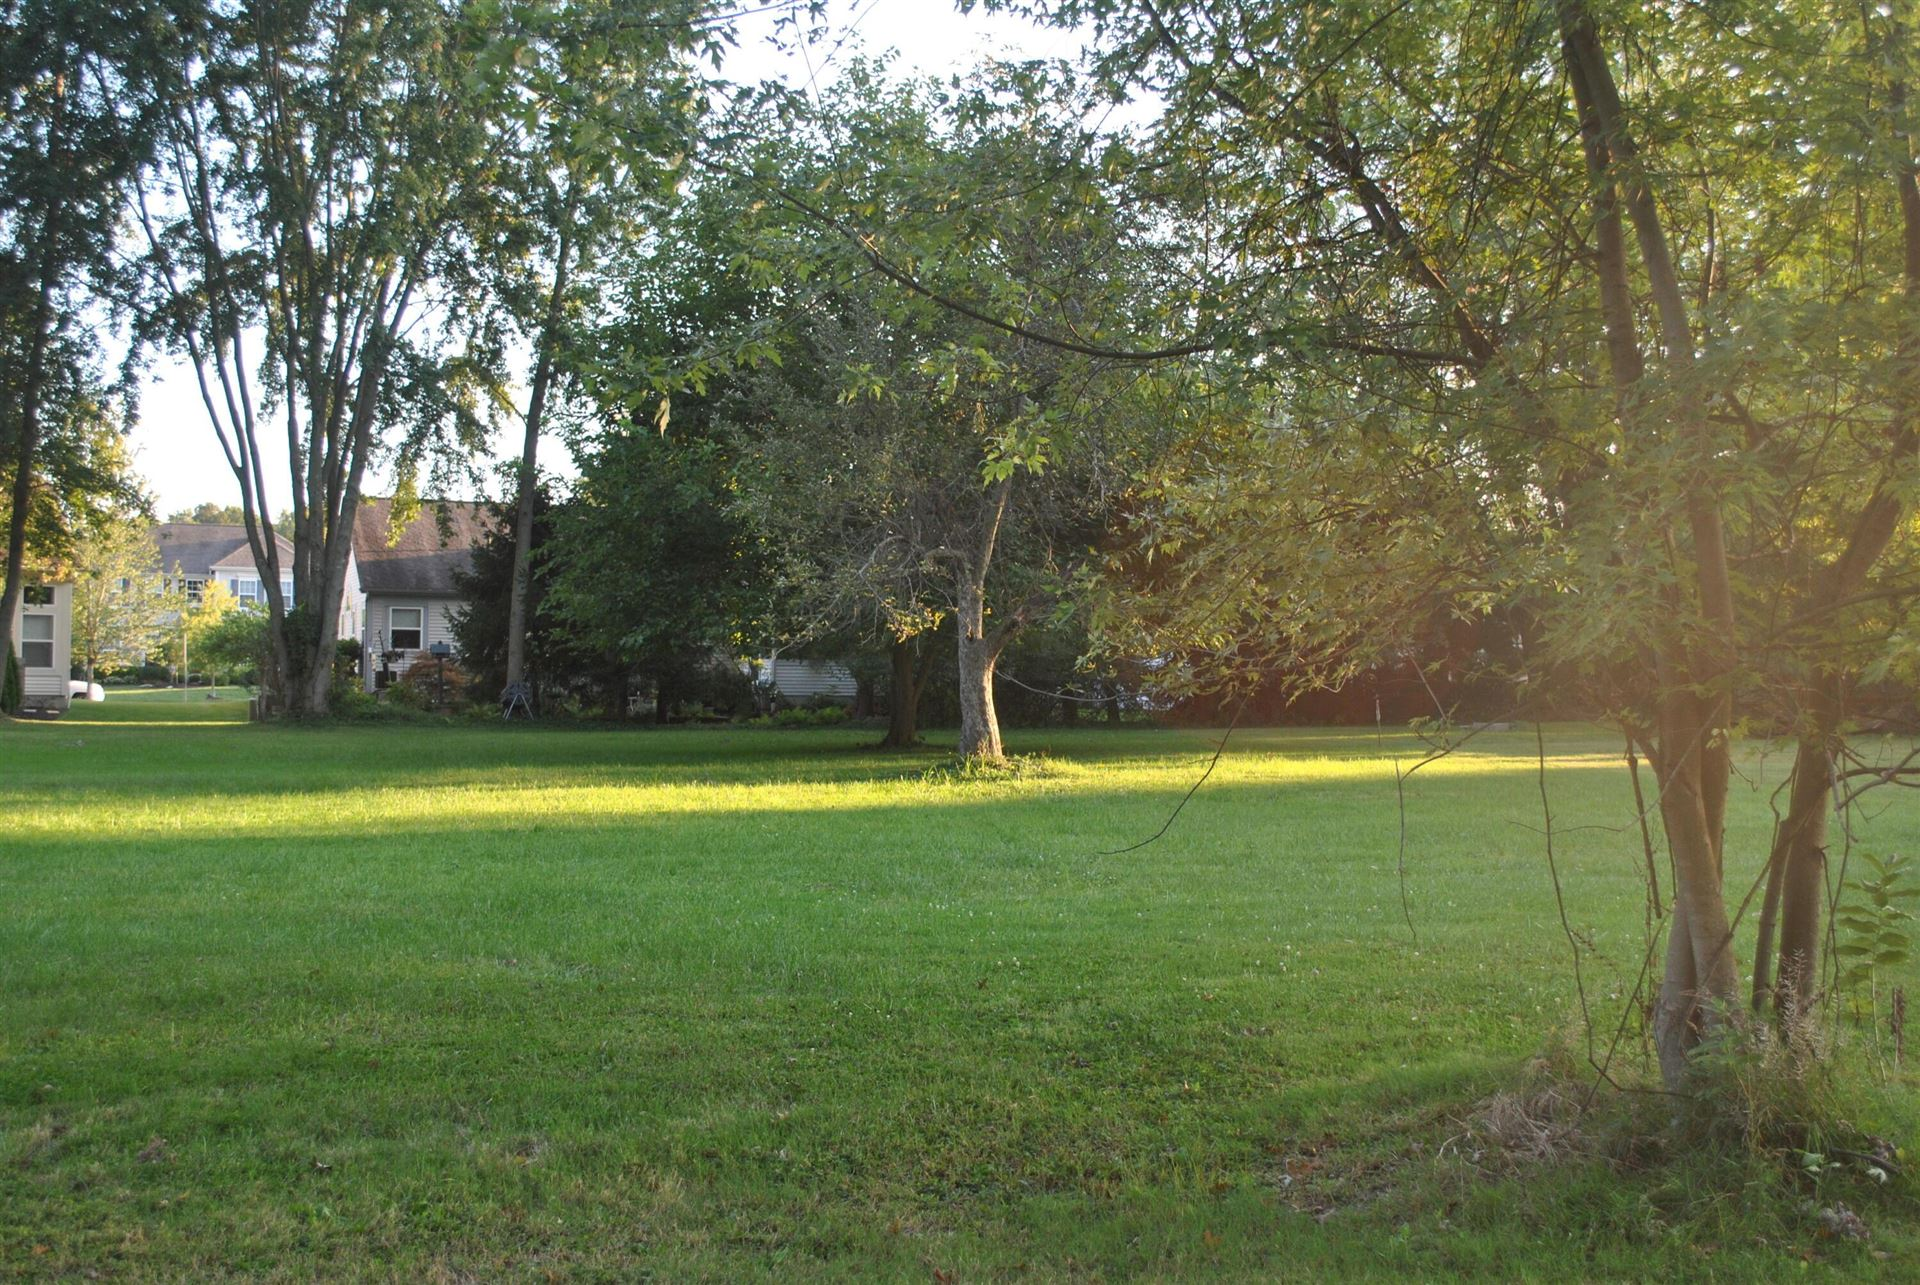 Photo of 5833 S Old 3 C Road, Westerville, OH 43082 (MLS # 221036788)